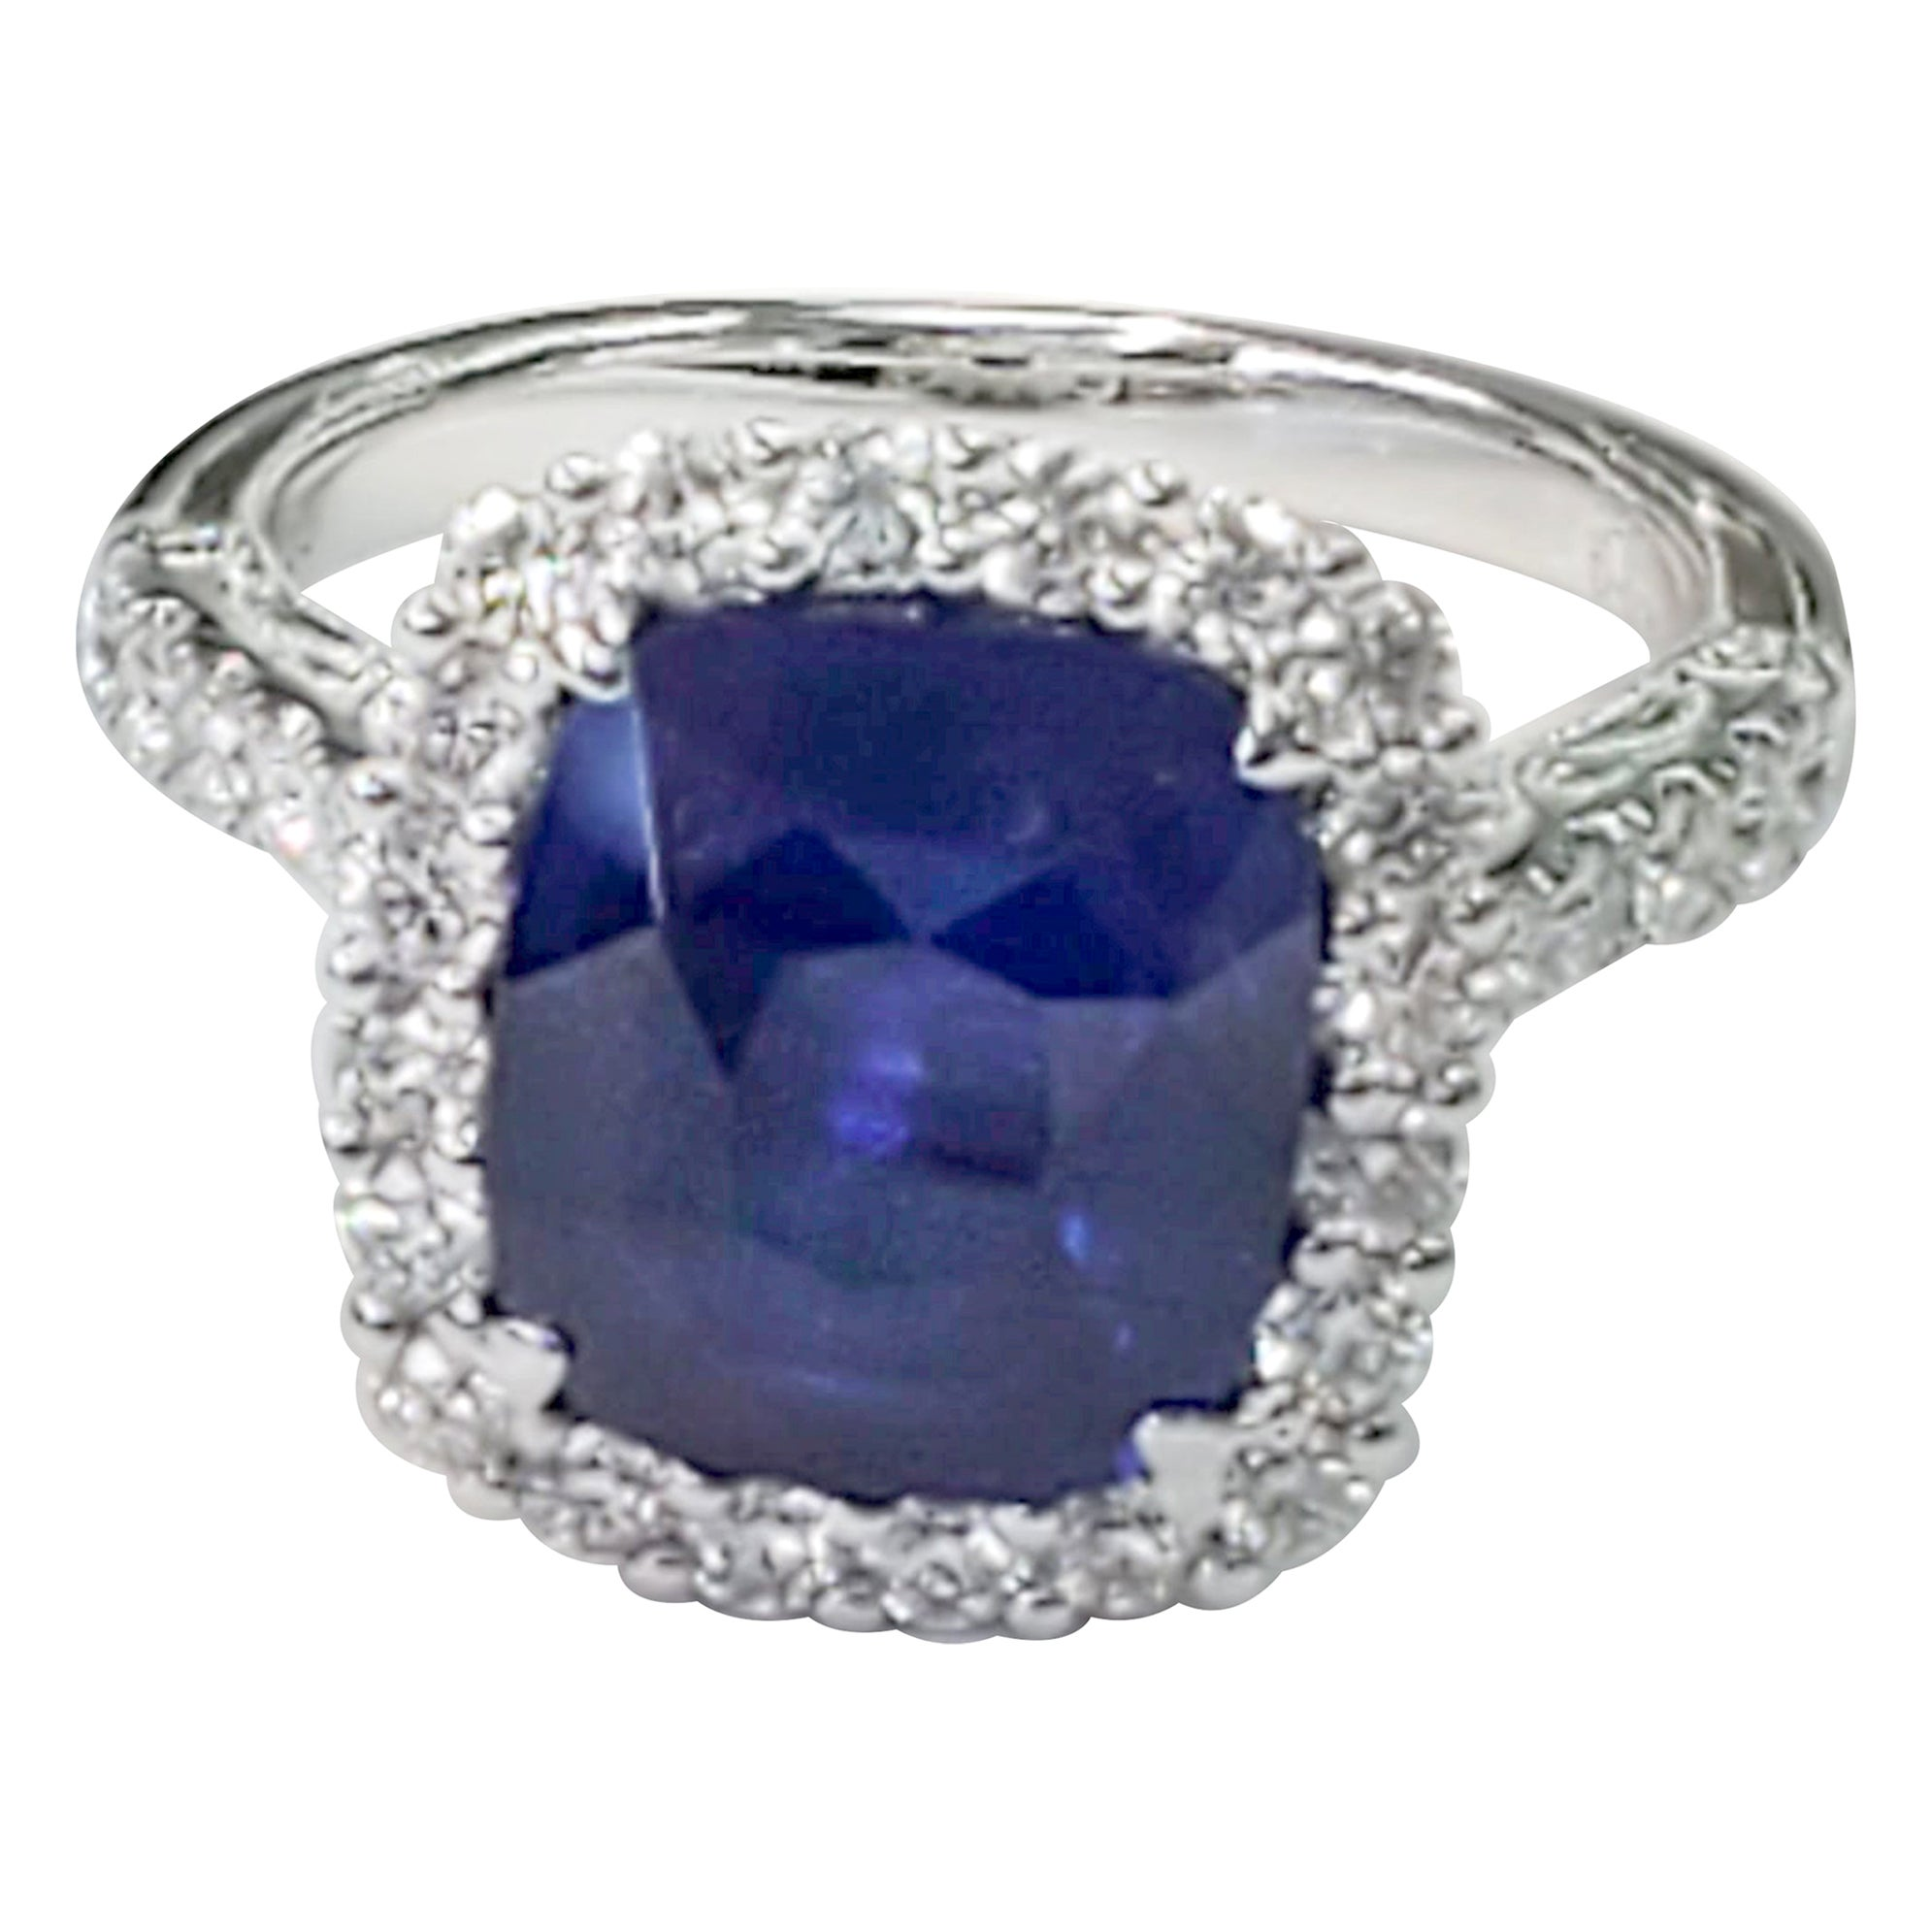 GIA Certified Blue Sapphire Cushion with White Diamond Ring